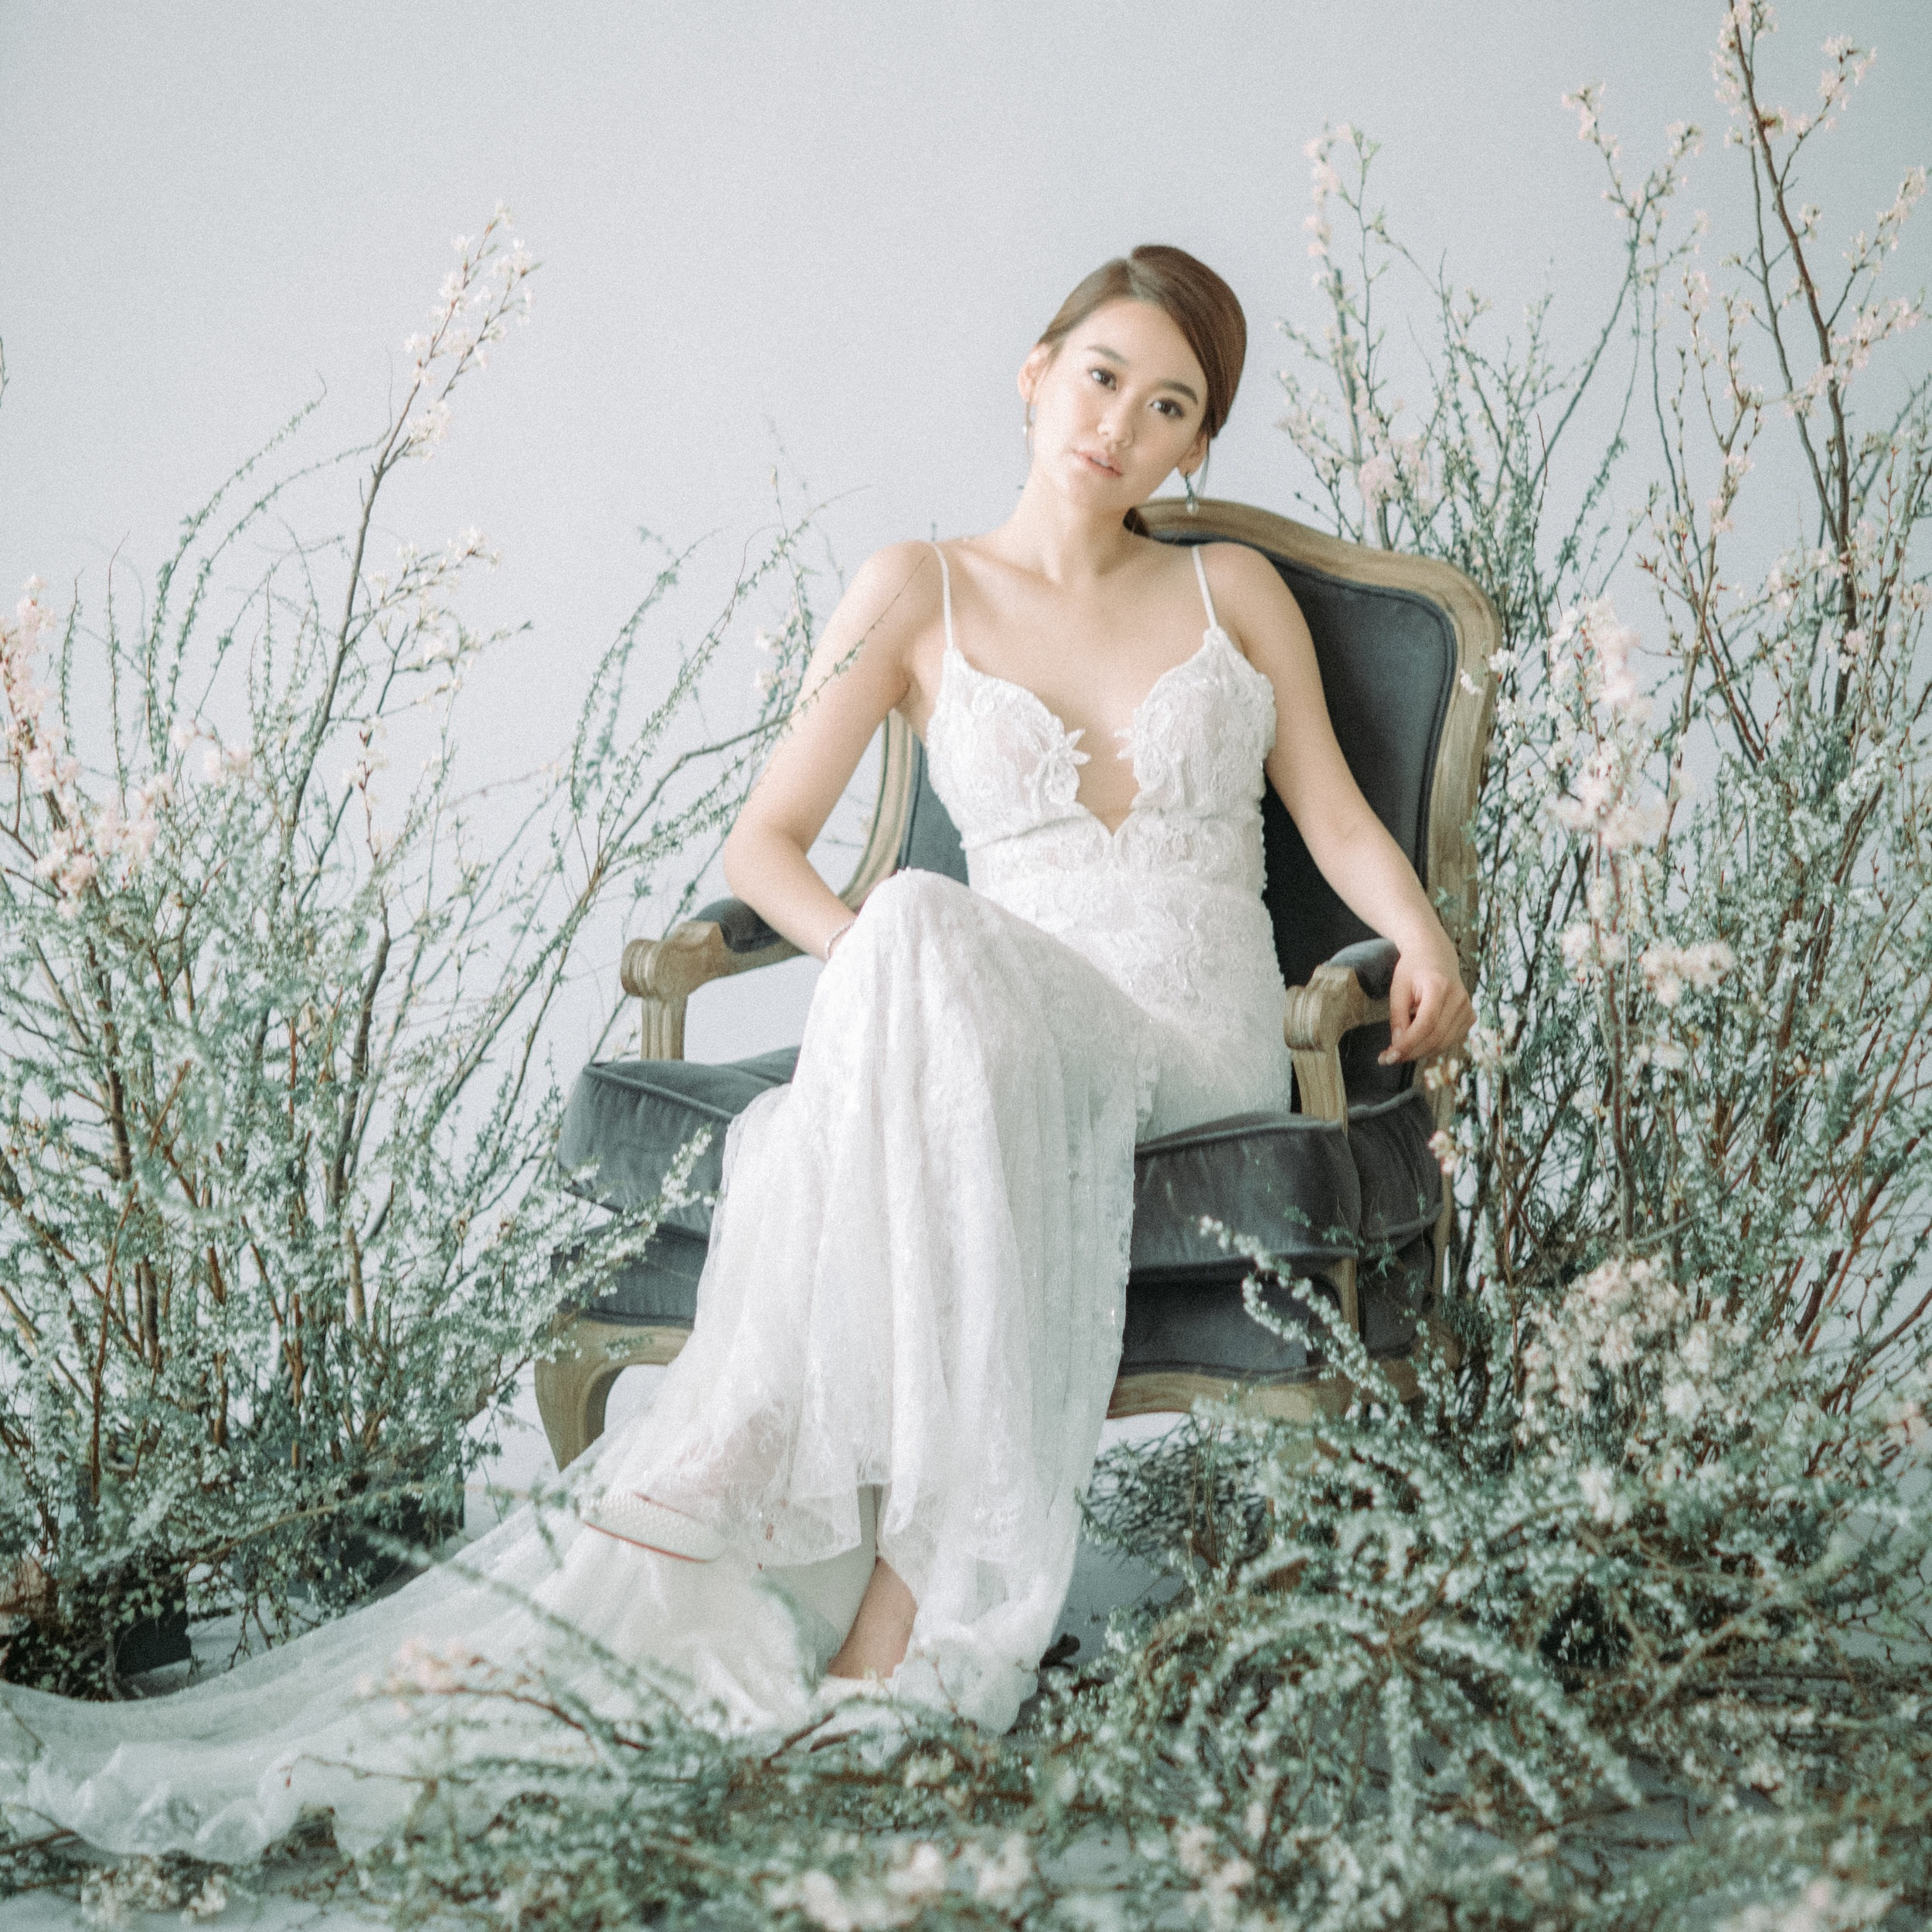 MODERN ETHEREAL EDITORIAL STYLED SHOOT   Photography by MaryAnn Art & Photography